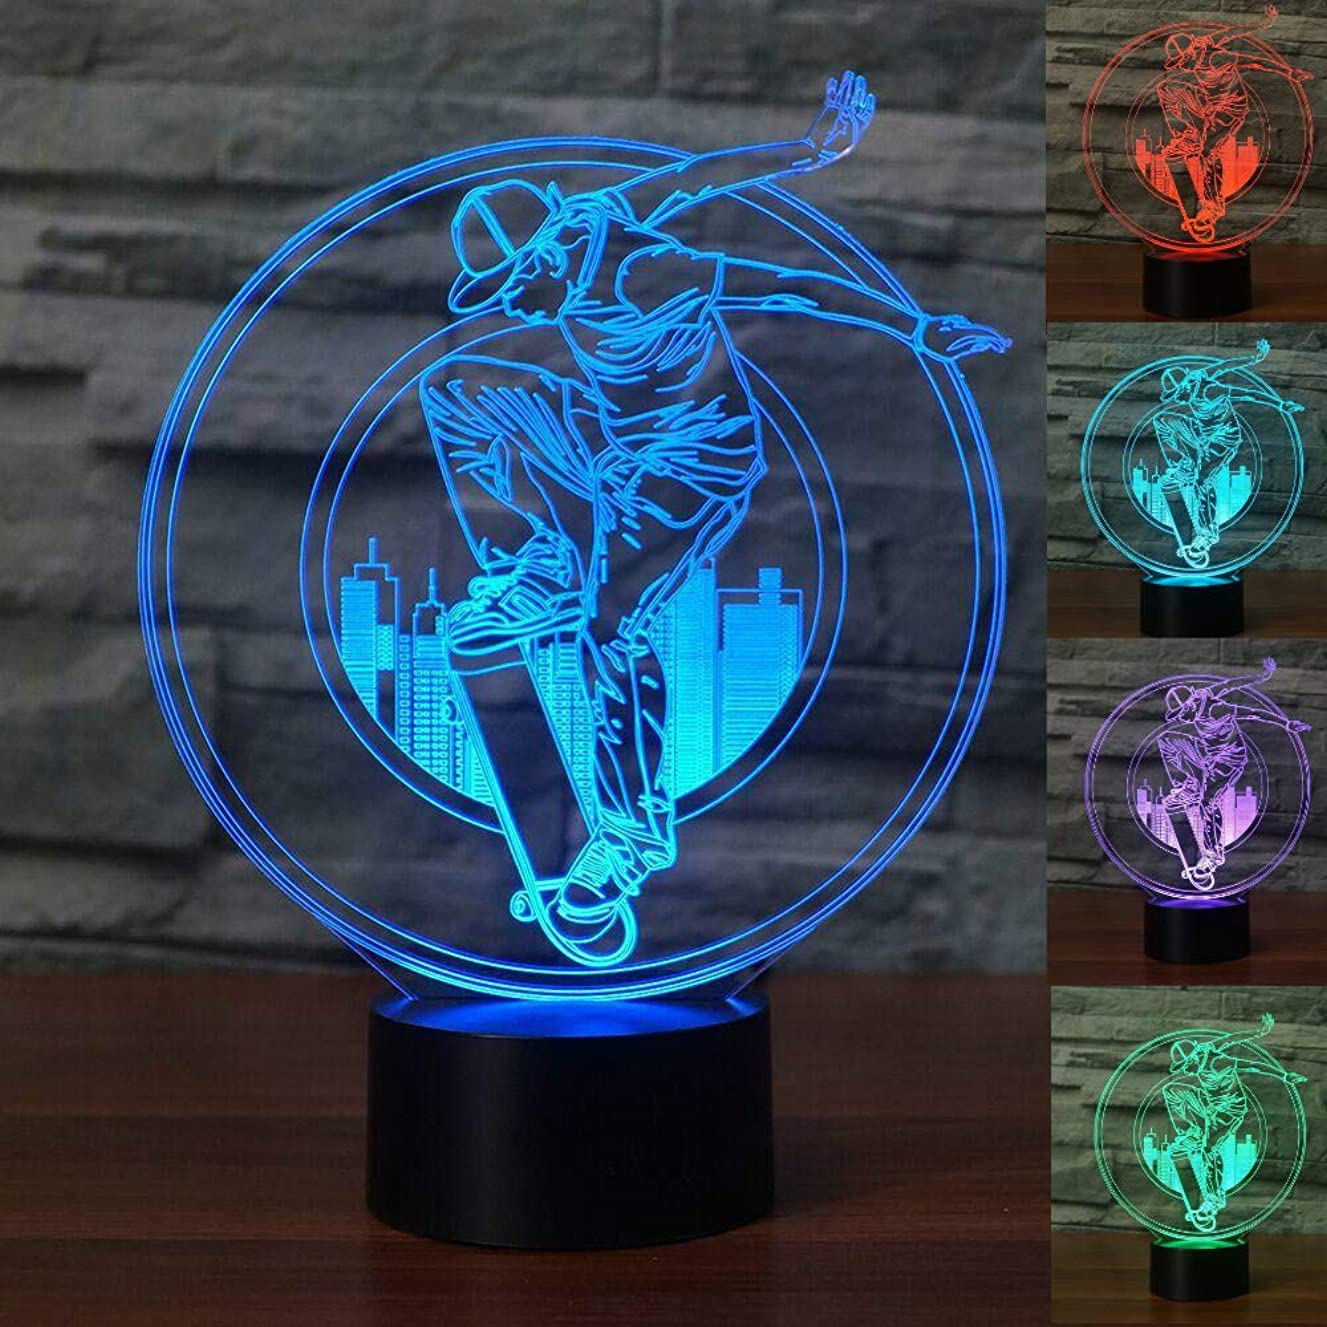 3D Skateboard Night Light Table Lamp Decor Table Desk Optical Illusion Lamps 7 Color Changing Lights LED Table Lamp Xmas Home Love Brithday Children Kids Decor Toy Gift